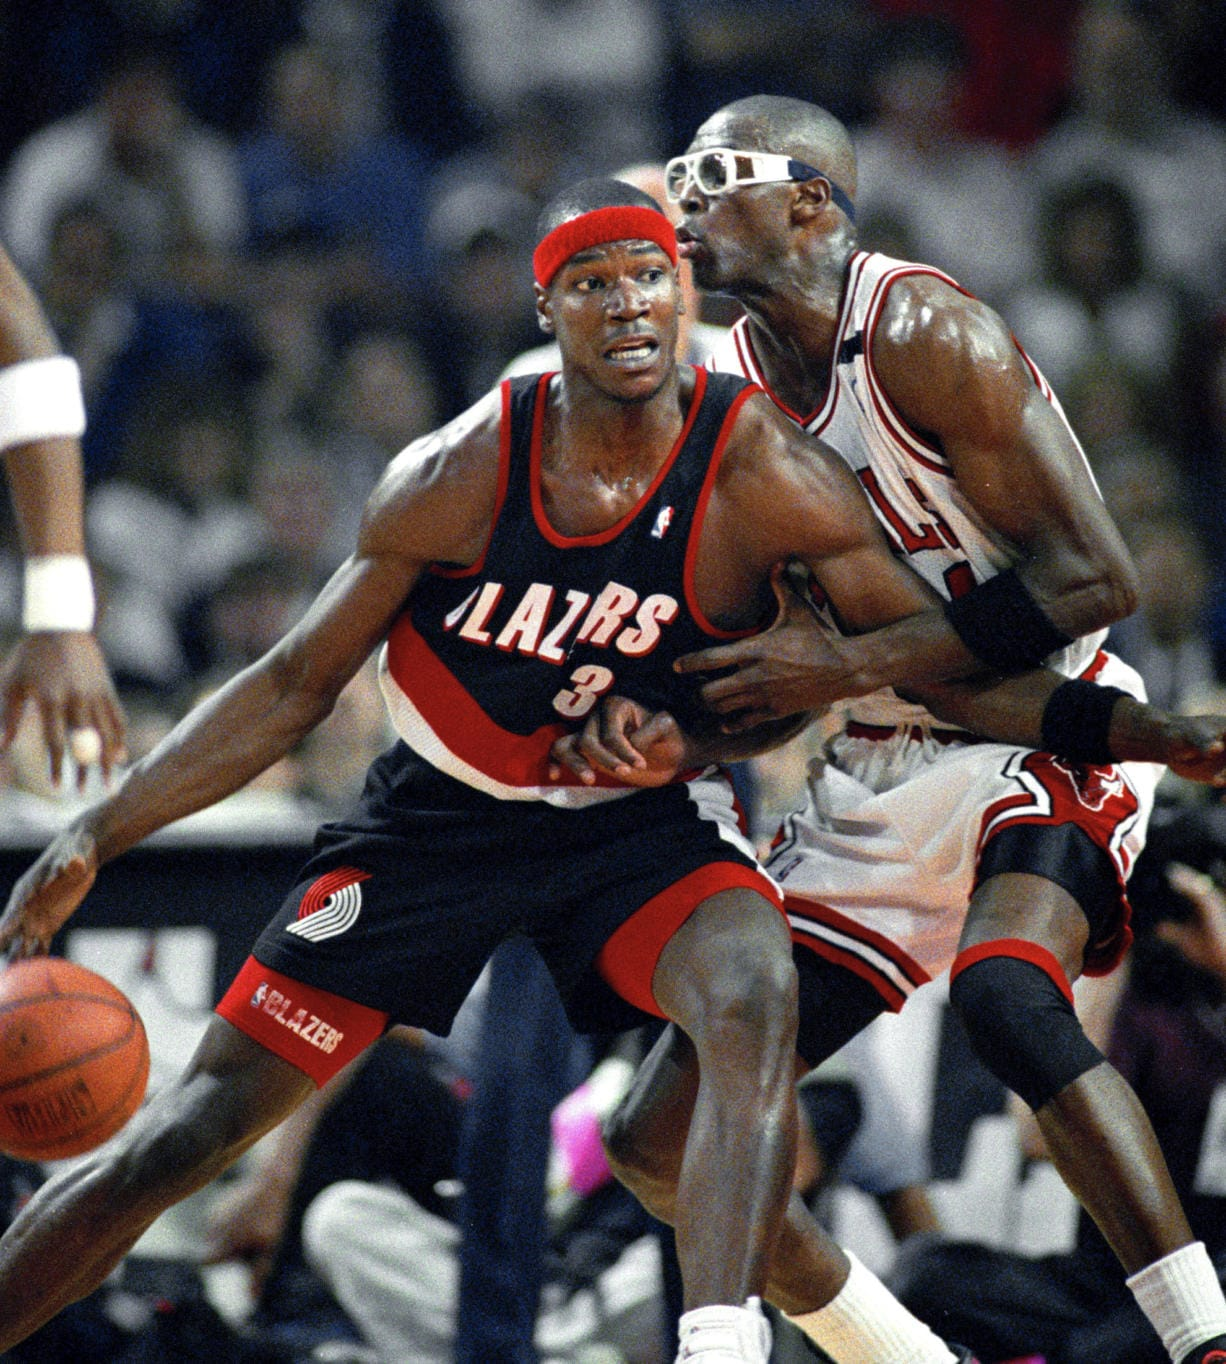 Portland Trail Blazers' Cliff Robinson drives on Chicago Bulls' Horace Grant during Game 1 of the 1992 NBA Finals in Chicago. Robinson, an early star on UConn's rise to power and longtime top sixth man in the NBA, has died. He was 53. Robinson's death was confirmed by UConn, Saturday, Aug. 29, 2020.